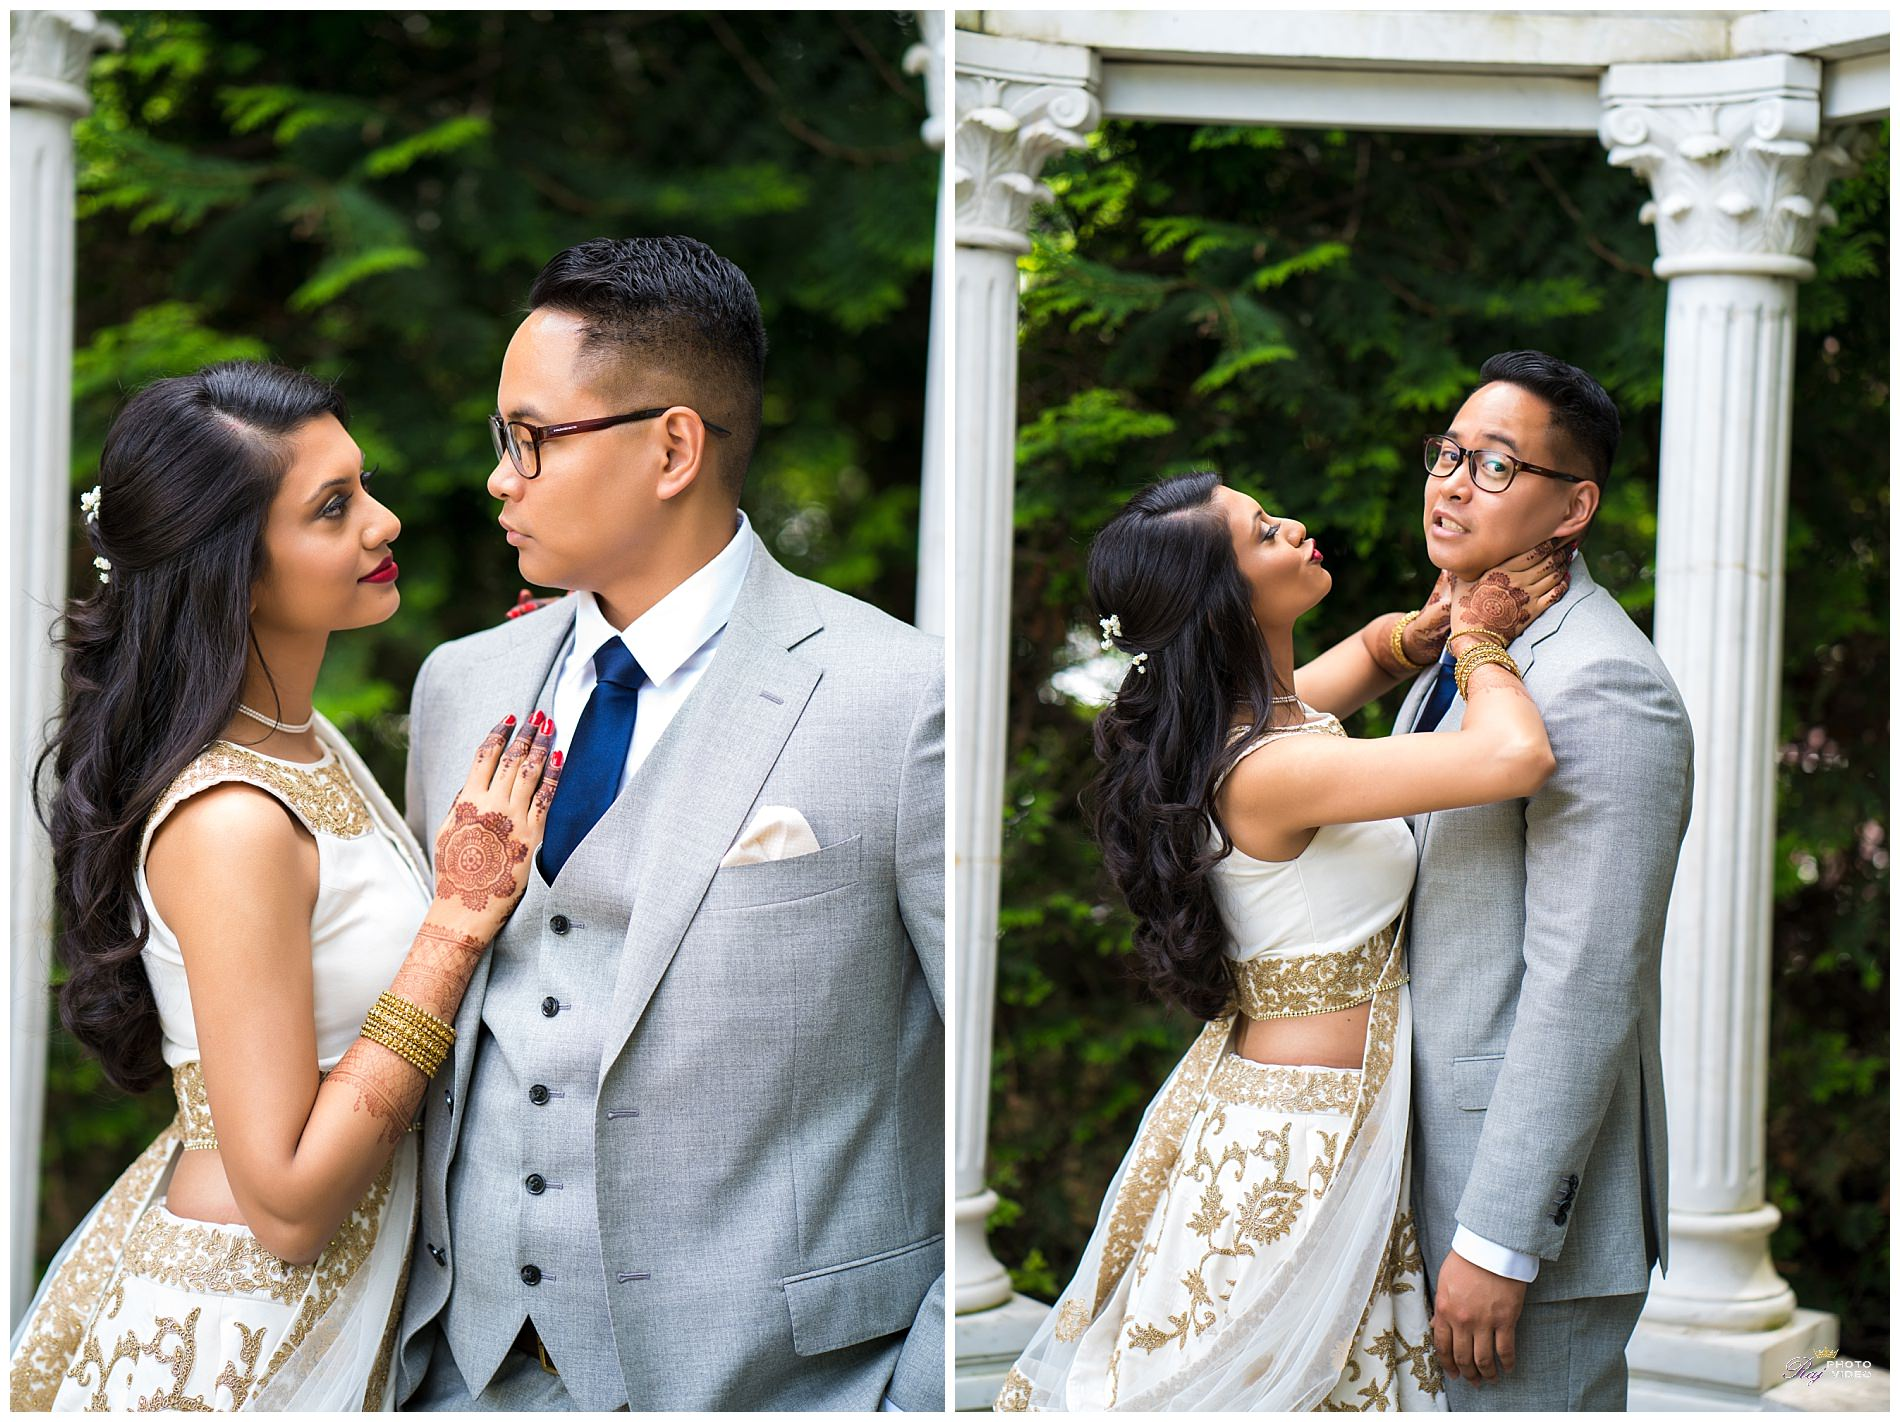 Royal-Manor-Garfield-NJ-Christian-Wedding-Ceremony-Khusbu-Jeff-21.jpg